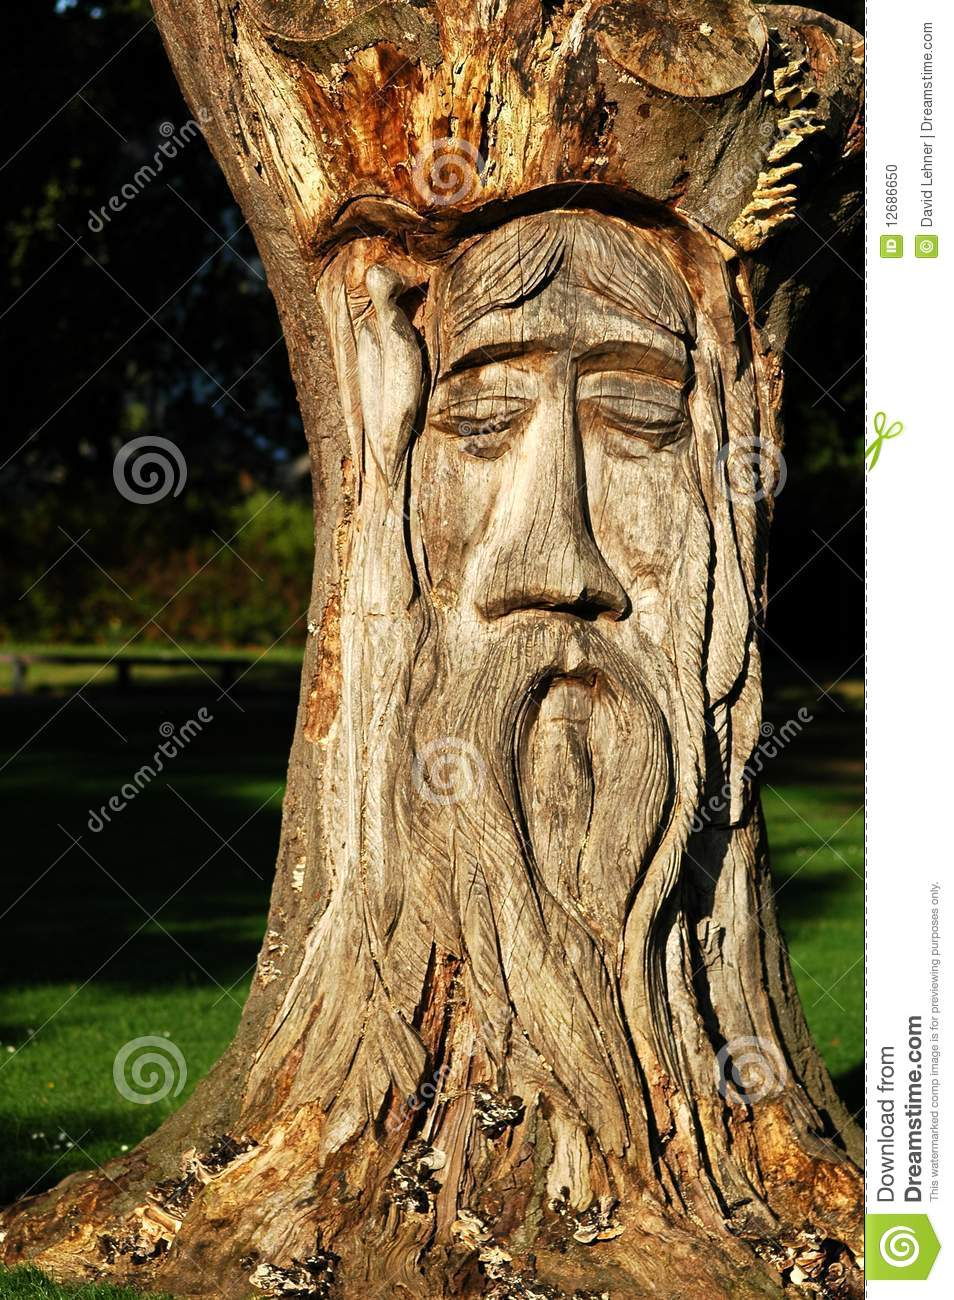 sculpture en bois en arbre photo stock image du visage 12686650. Black Bedroom Furniture Sets. Home Design Ideas